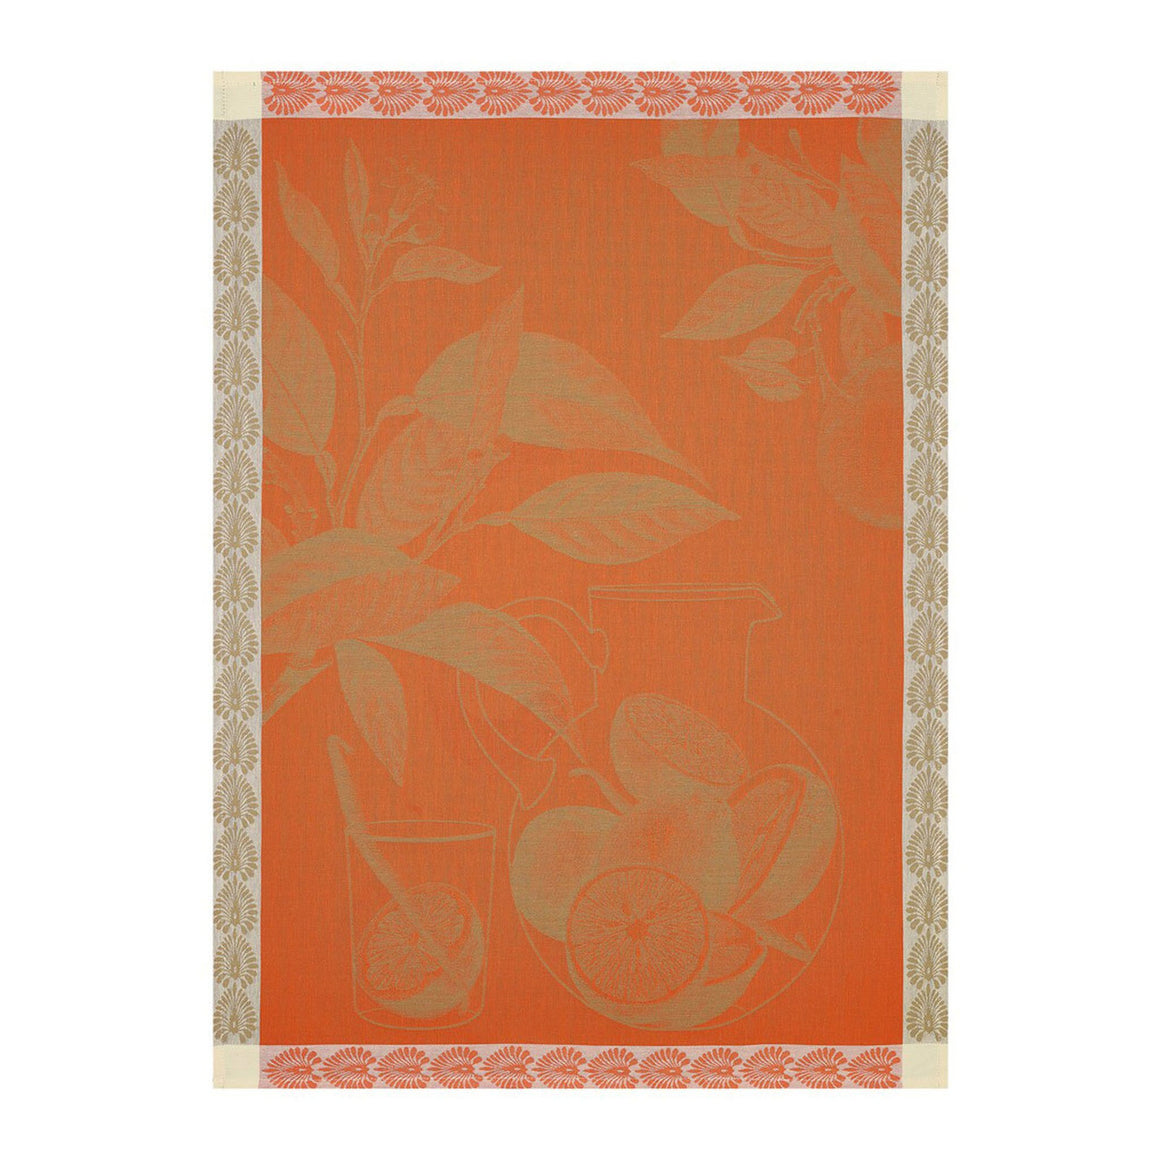 Eaux d'Agrumes Orange Tea Towel